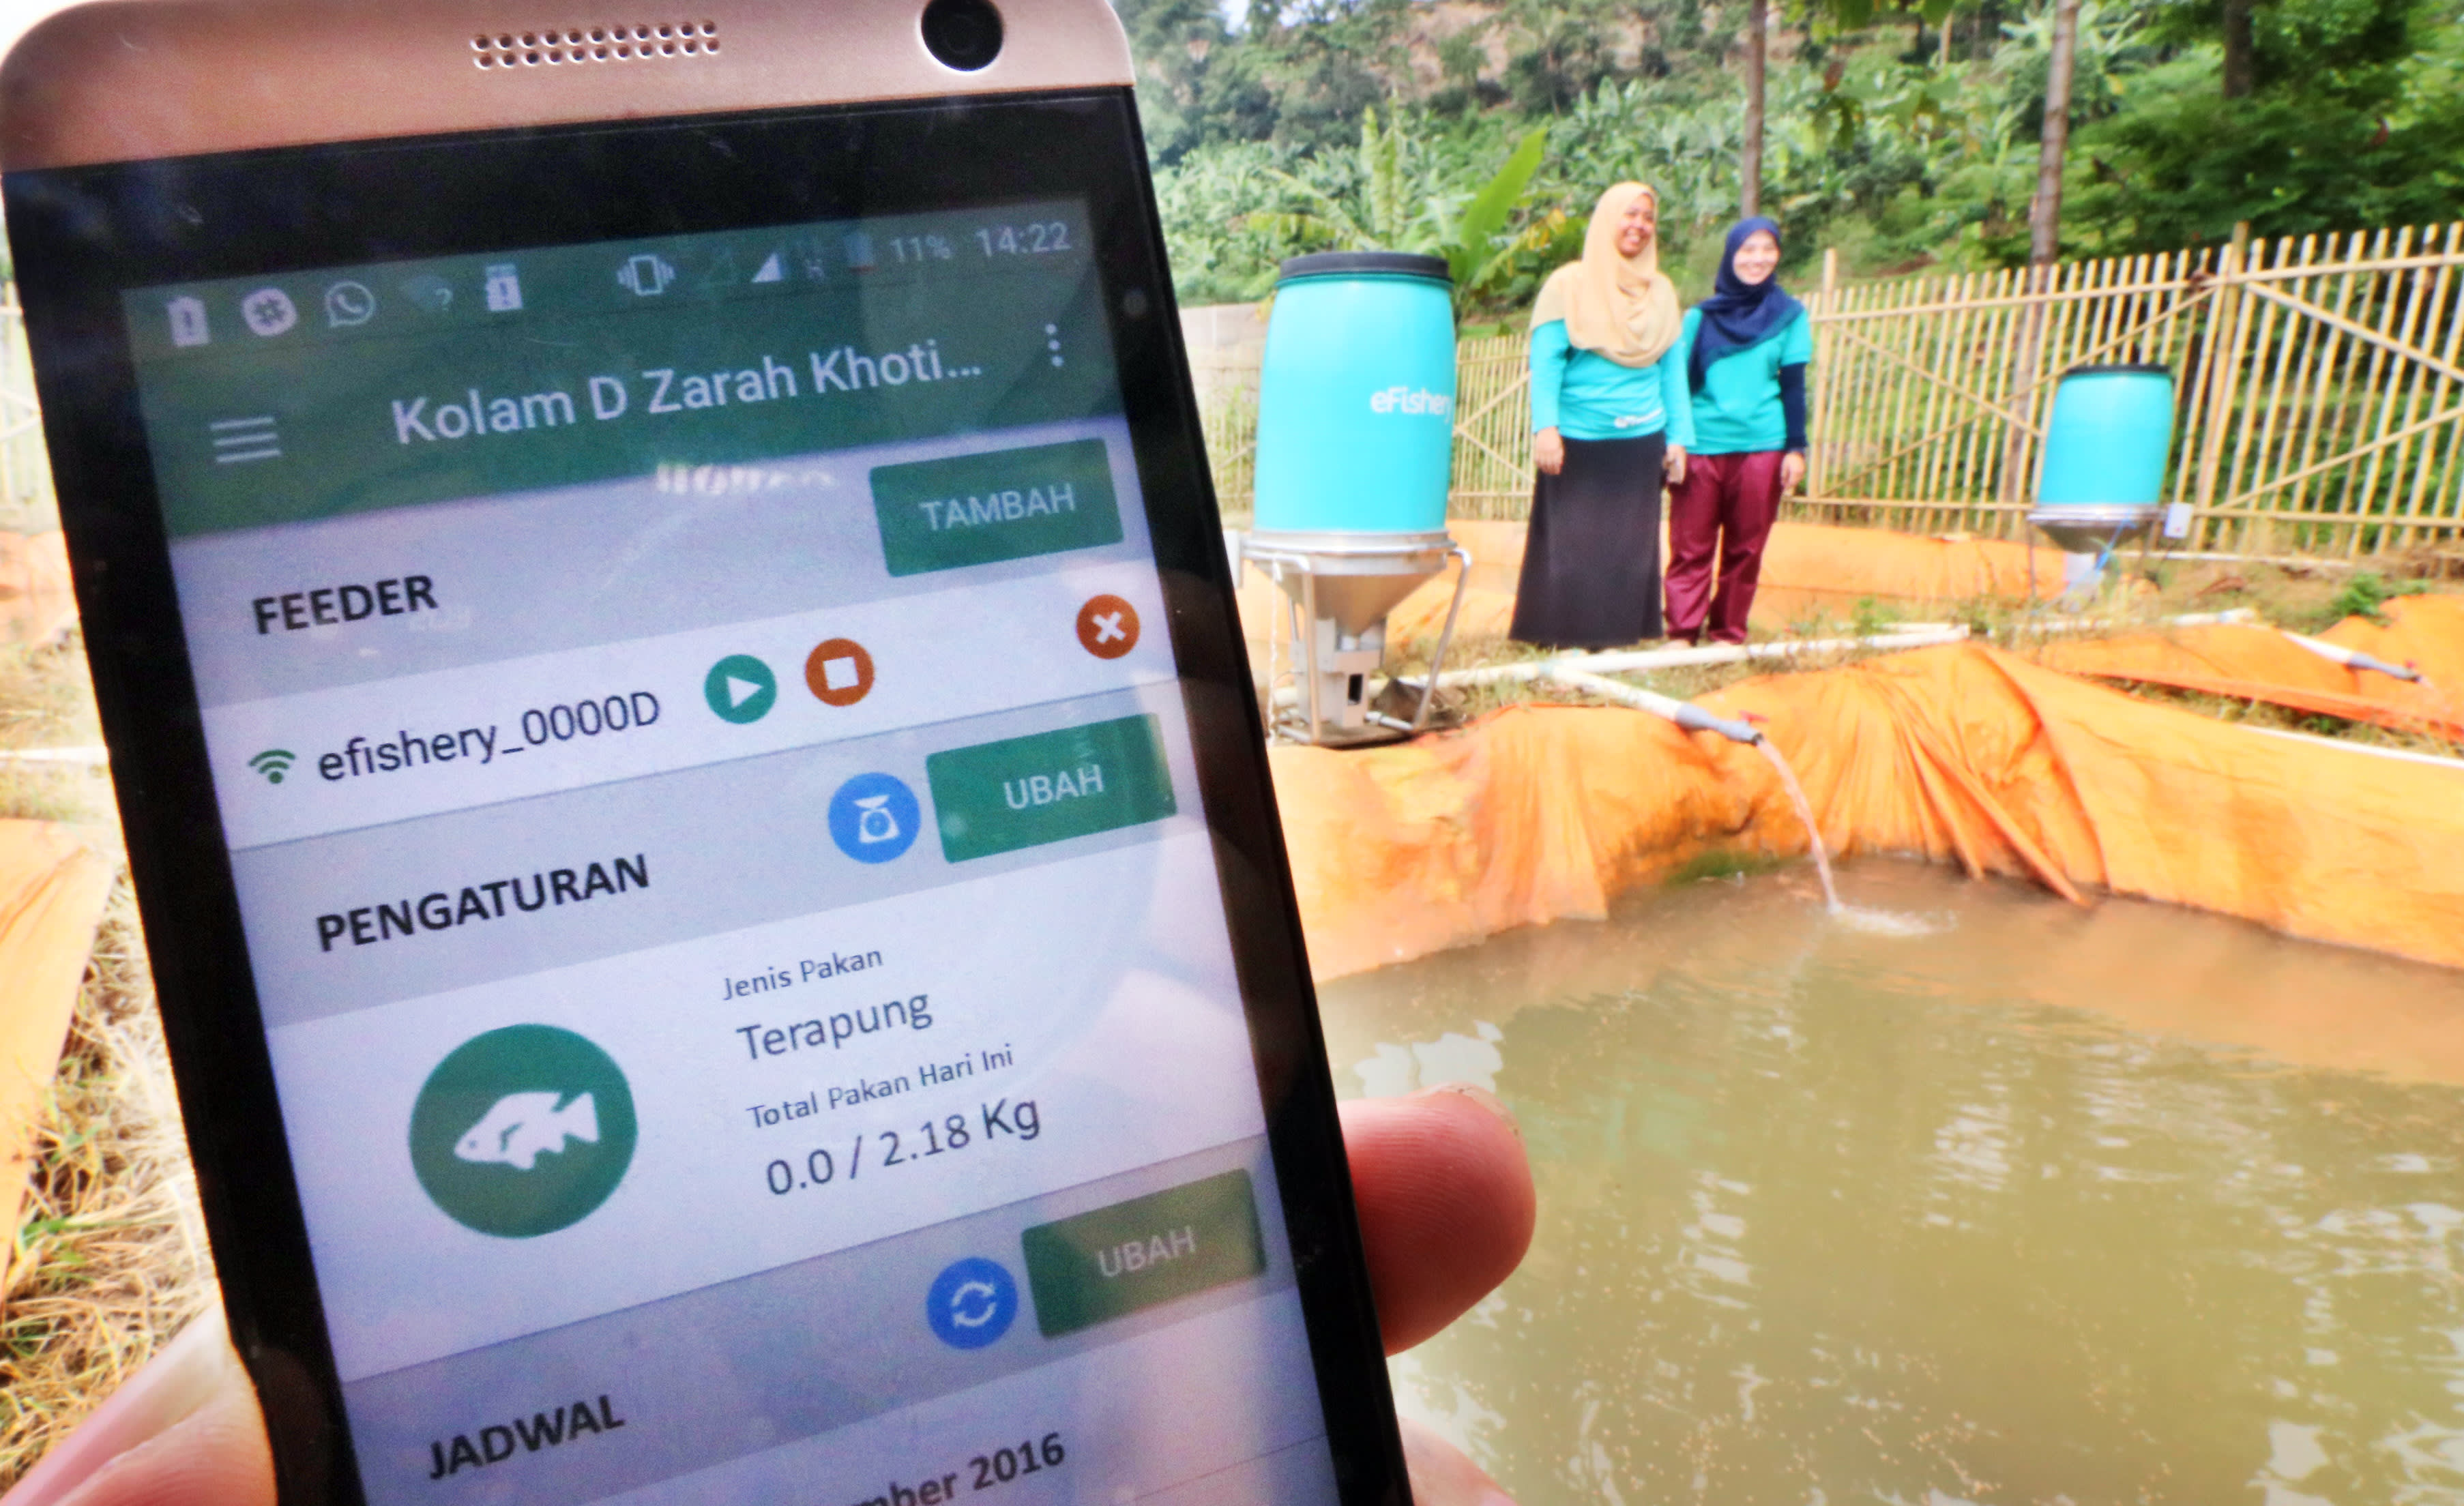 Indonesian startup eFishery allows fish farmers to control and monitor feeding through a smartphone app. Image: Shinya Sawai/Nikkei Asia Review